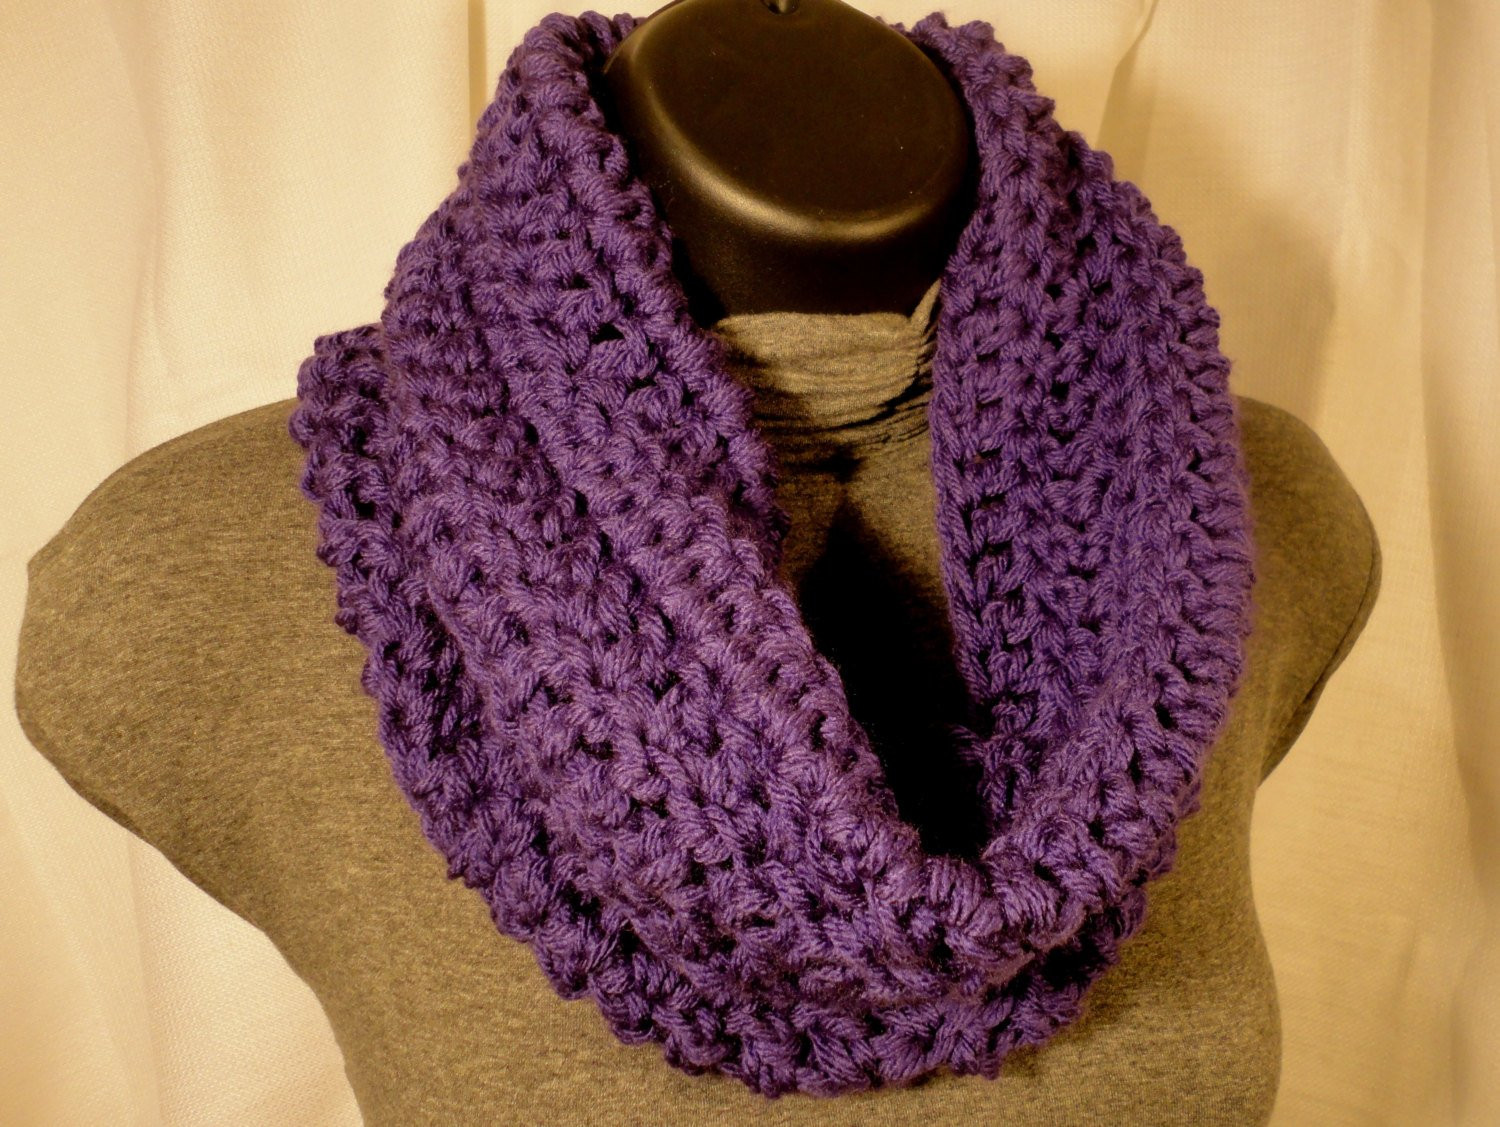 New All In E Crochet Cowl Neck Hood and Scarf Item by Crochet Scarves Of Amazing 43 Photos Crochet Scarves